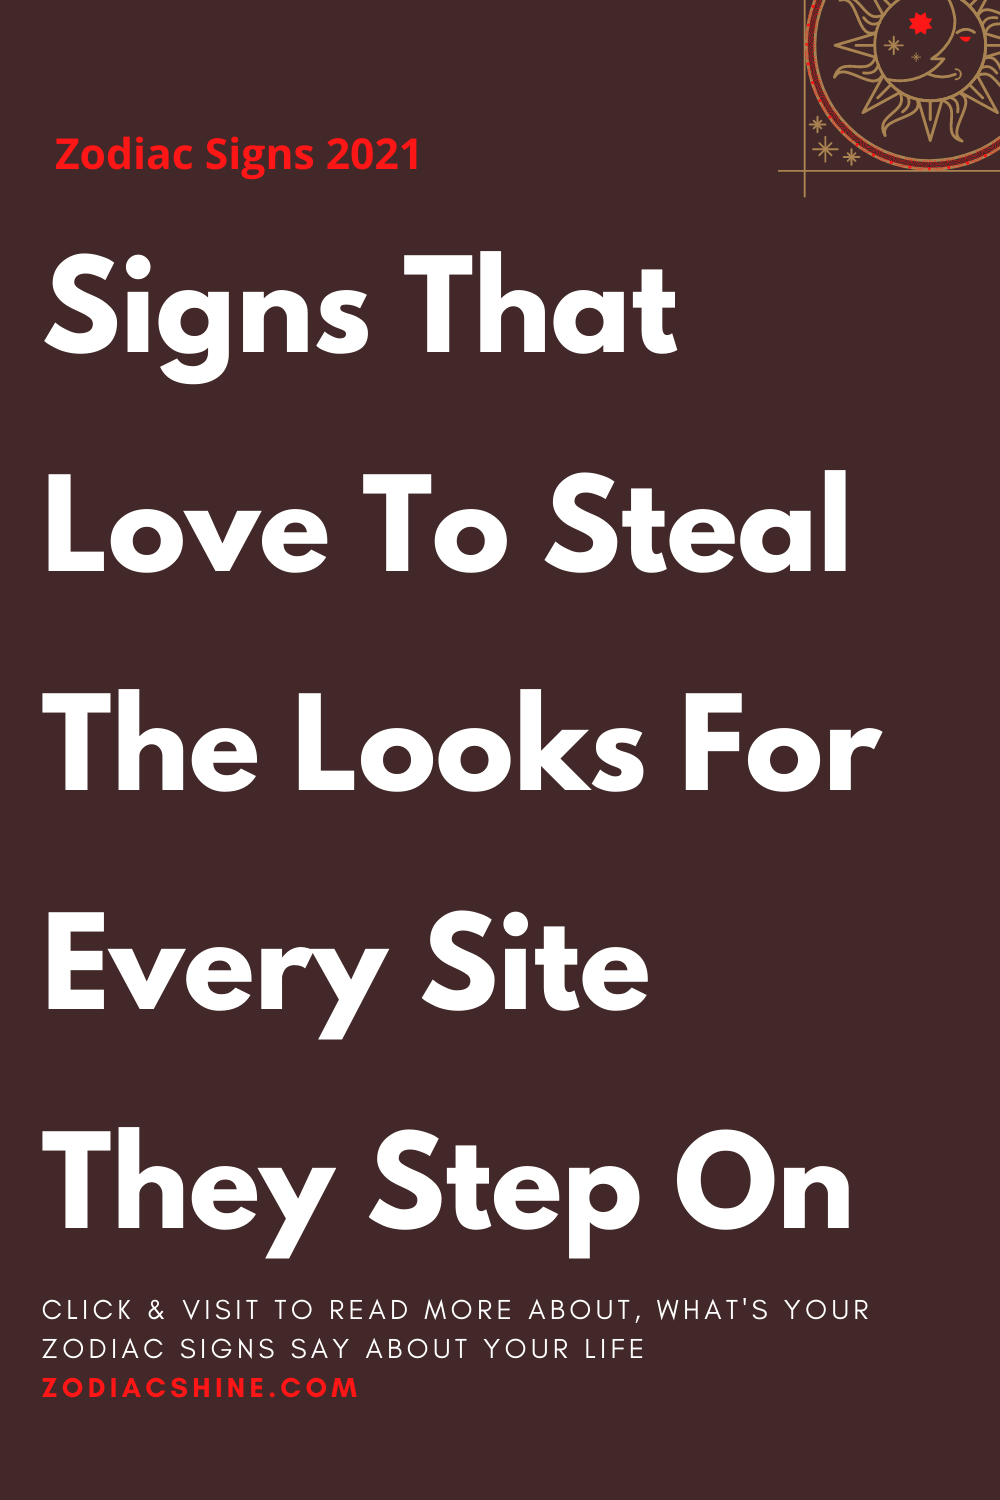 Signs That Love To Steal The Looks For Every Site They Step On